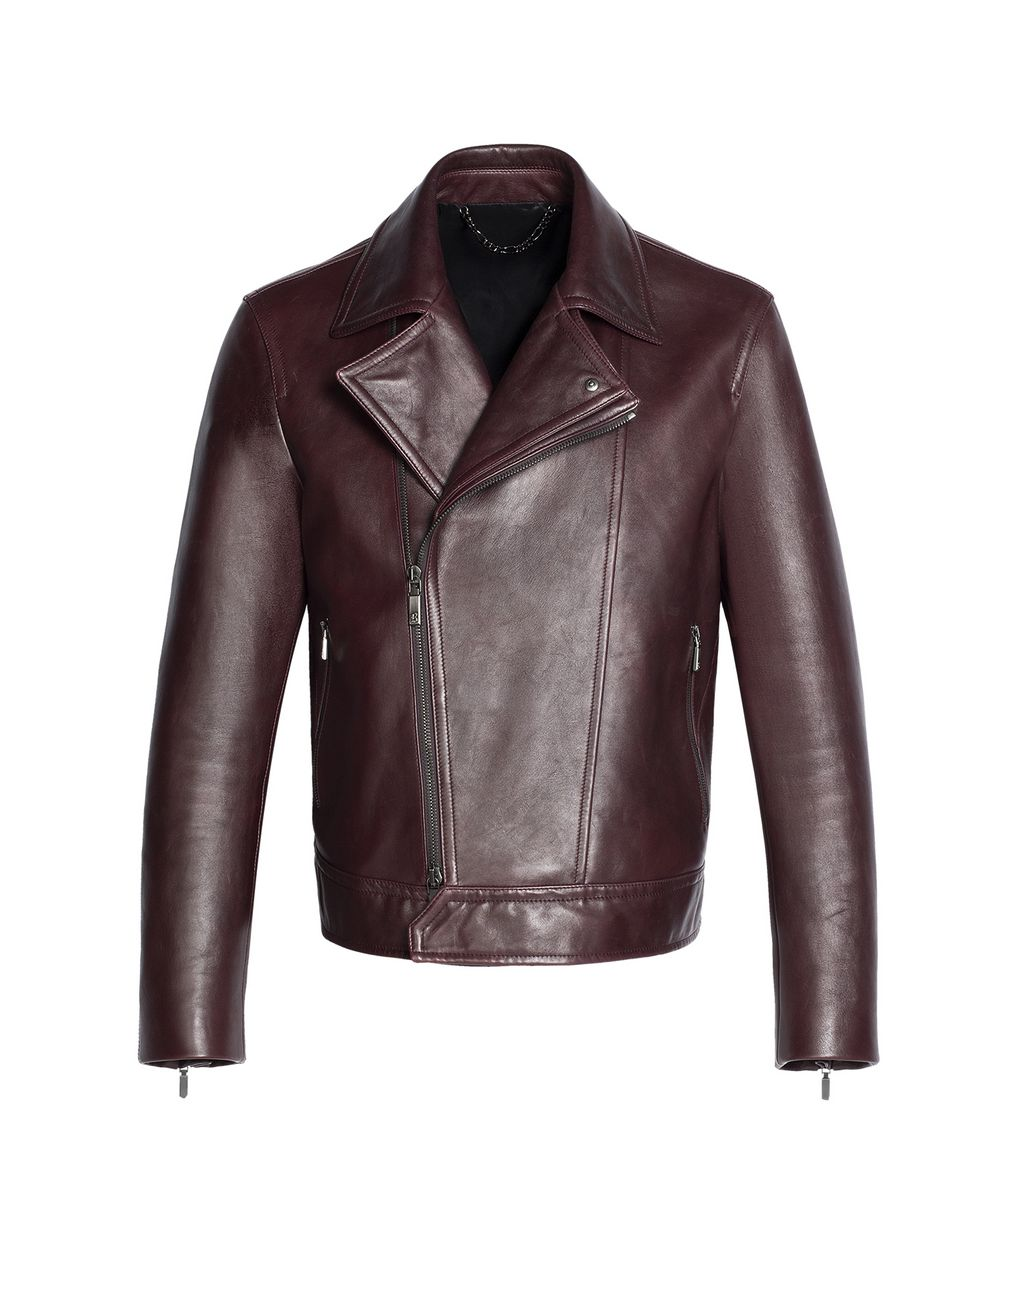 BRIONI Burgundy Leather Biker Jacket Outerwear Man f